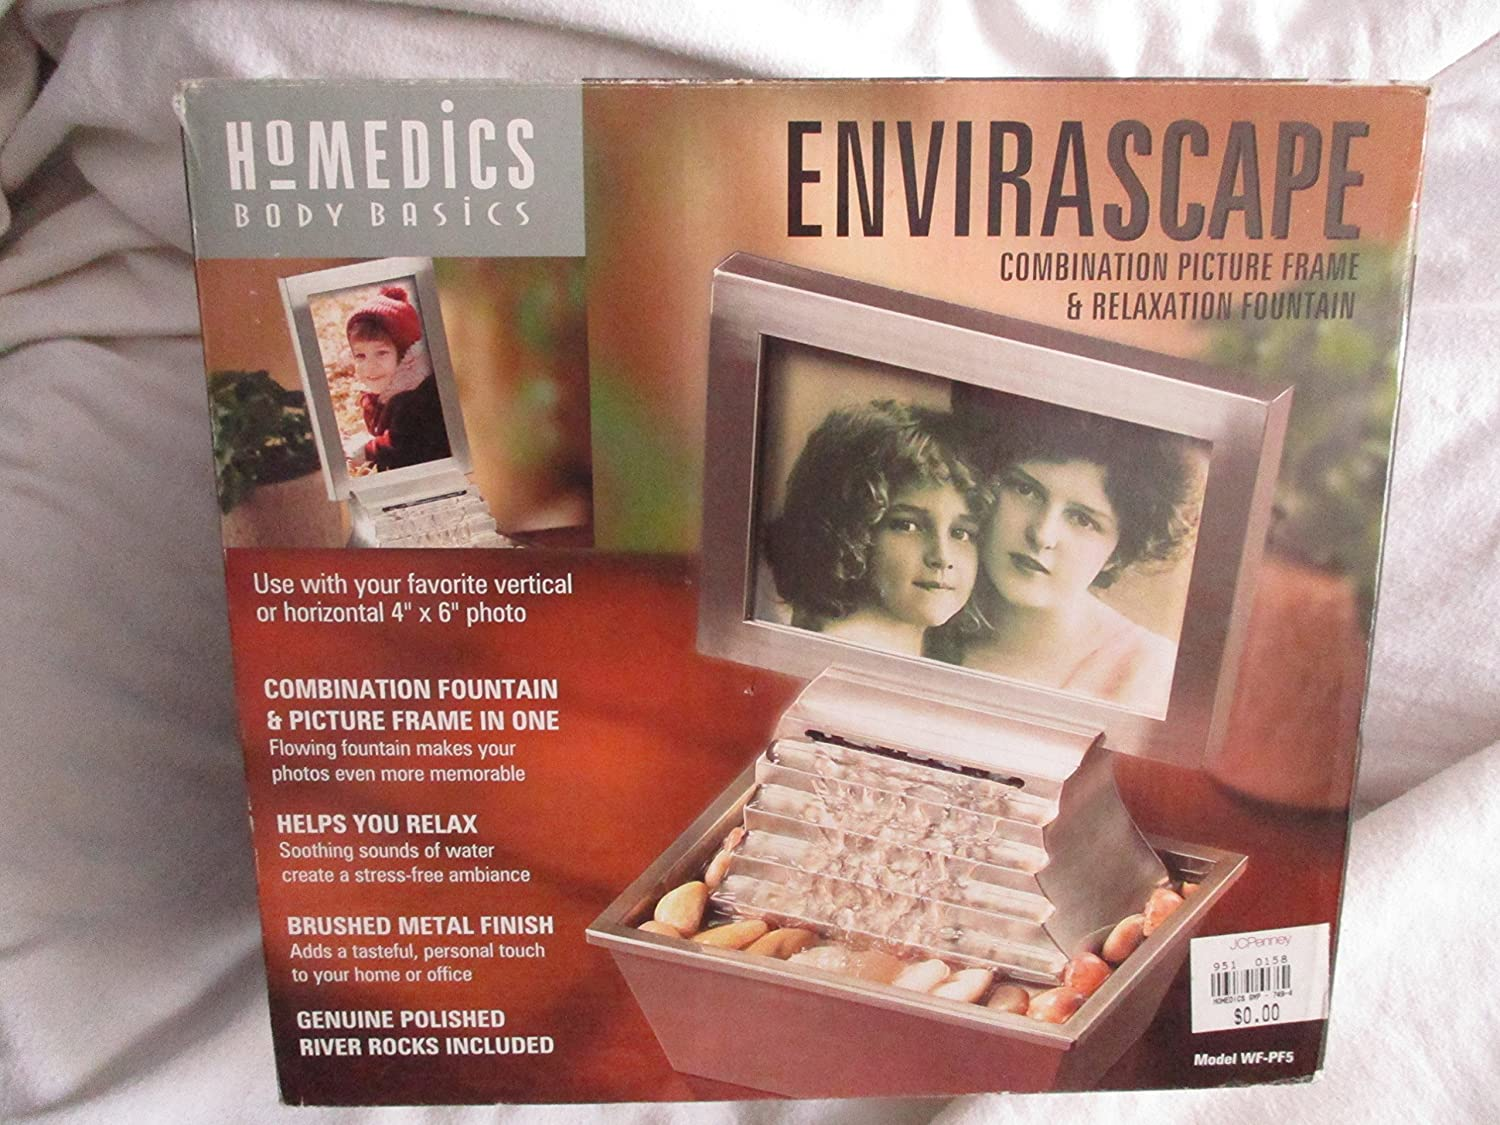 Envirascape: Combination Picture Frame (4x6) and Relaxation Fountain